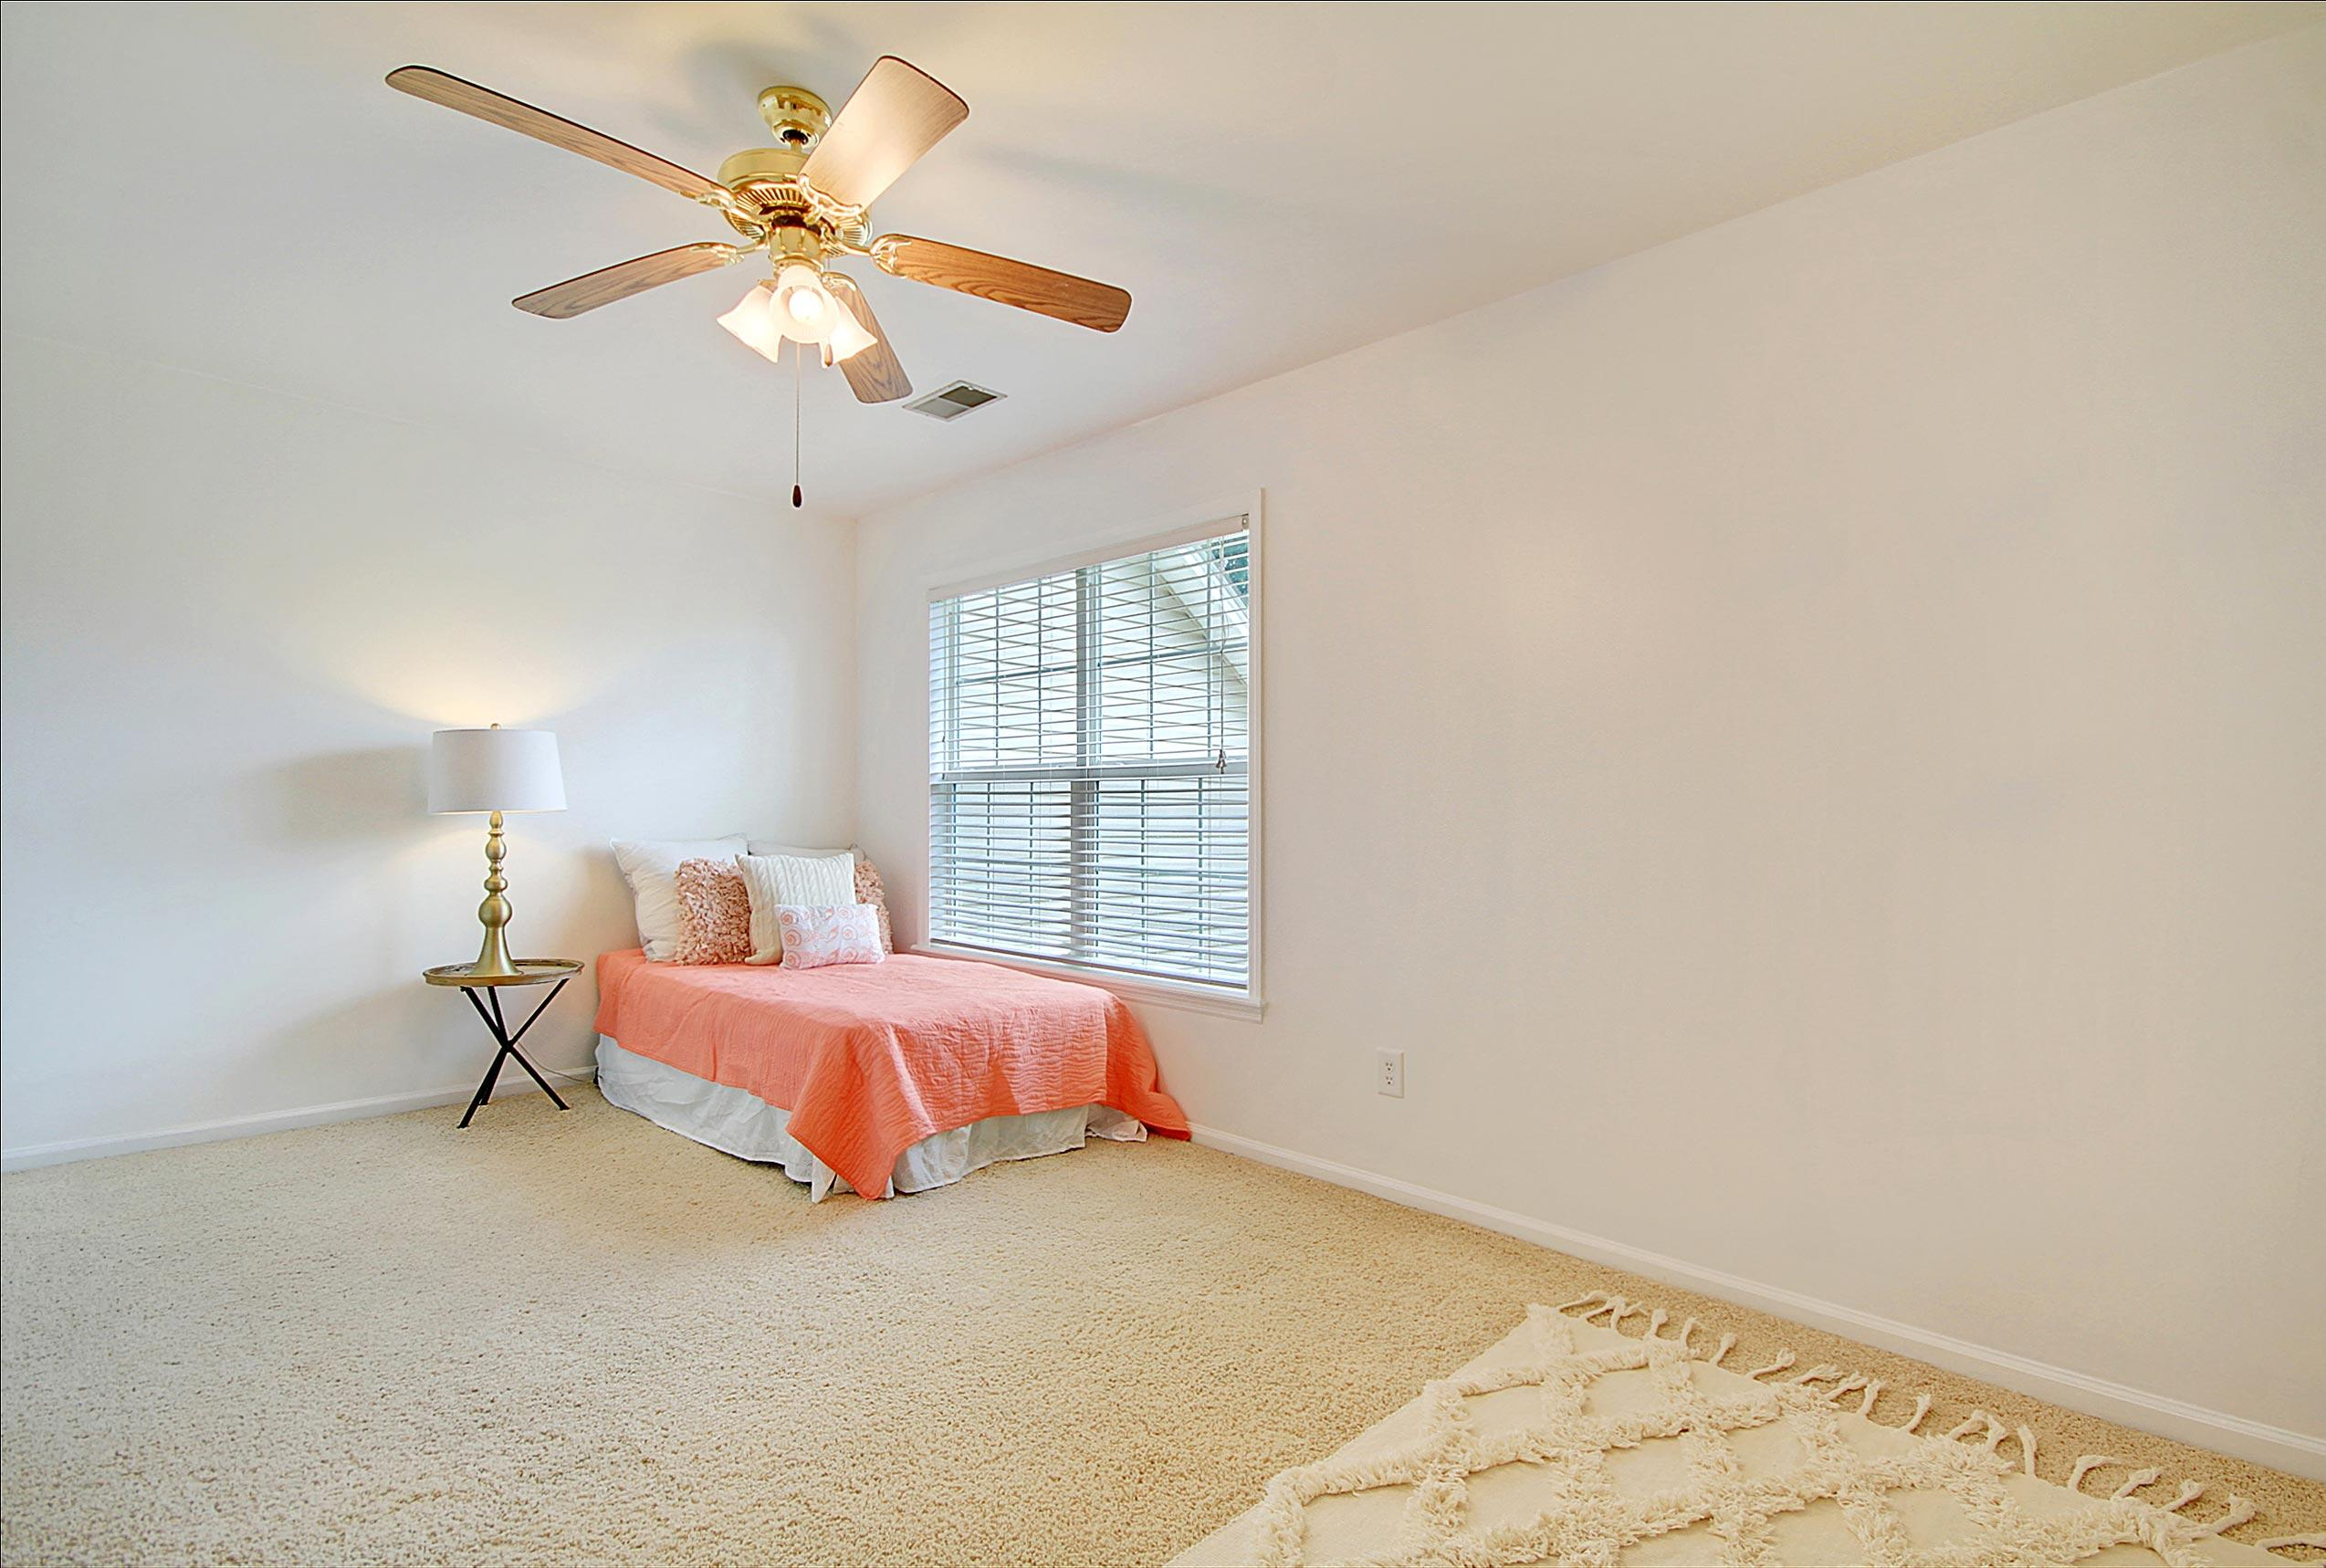 Rivers Point Row Homes For Sale - 37 Rivers Point, Charleston, SC - 12